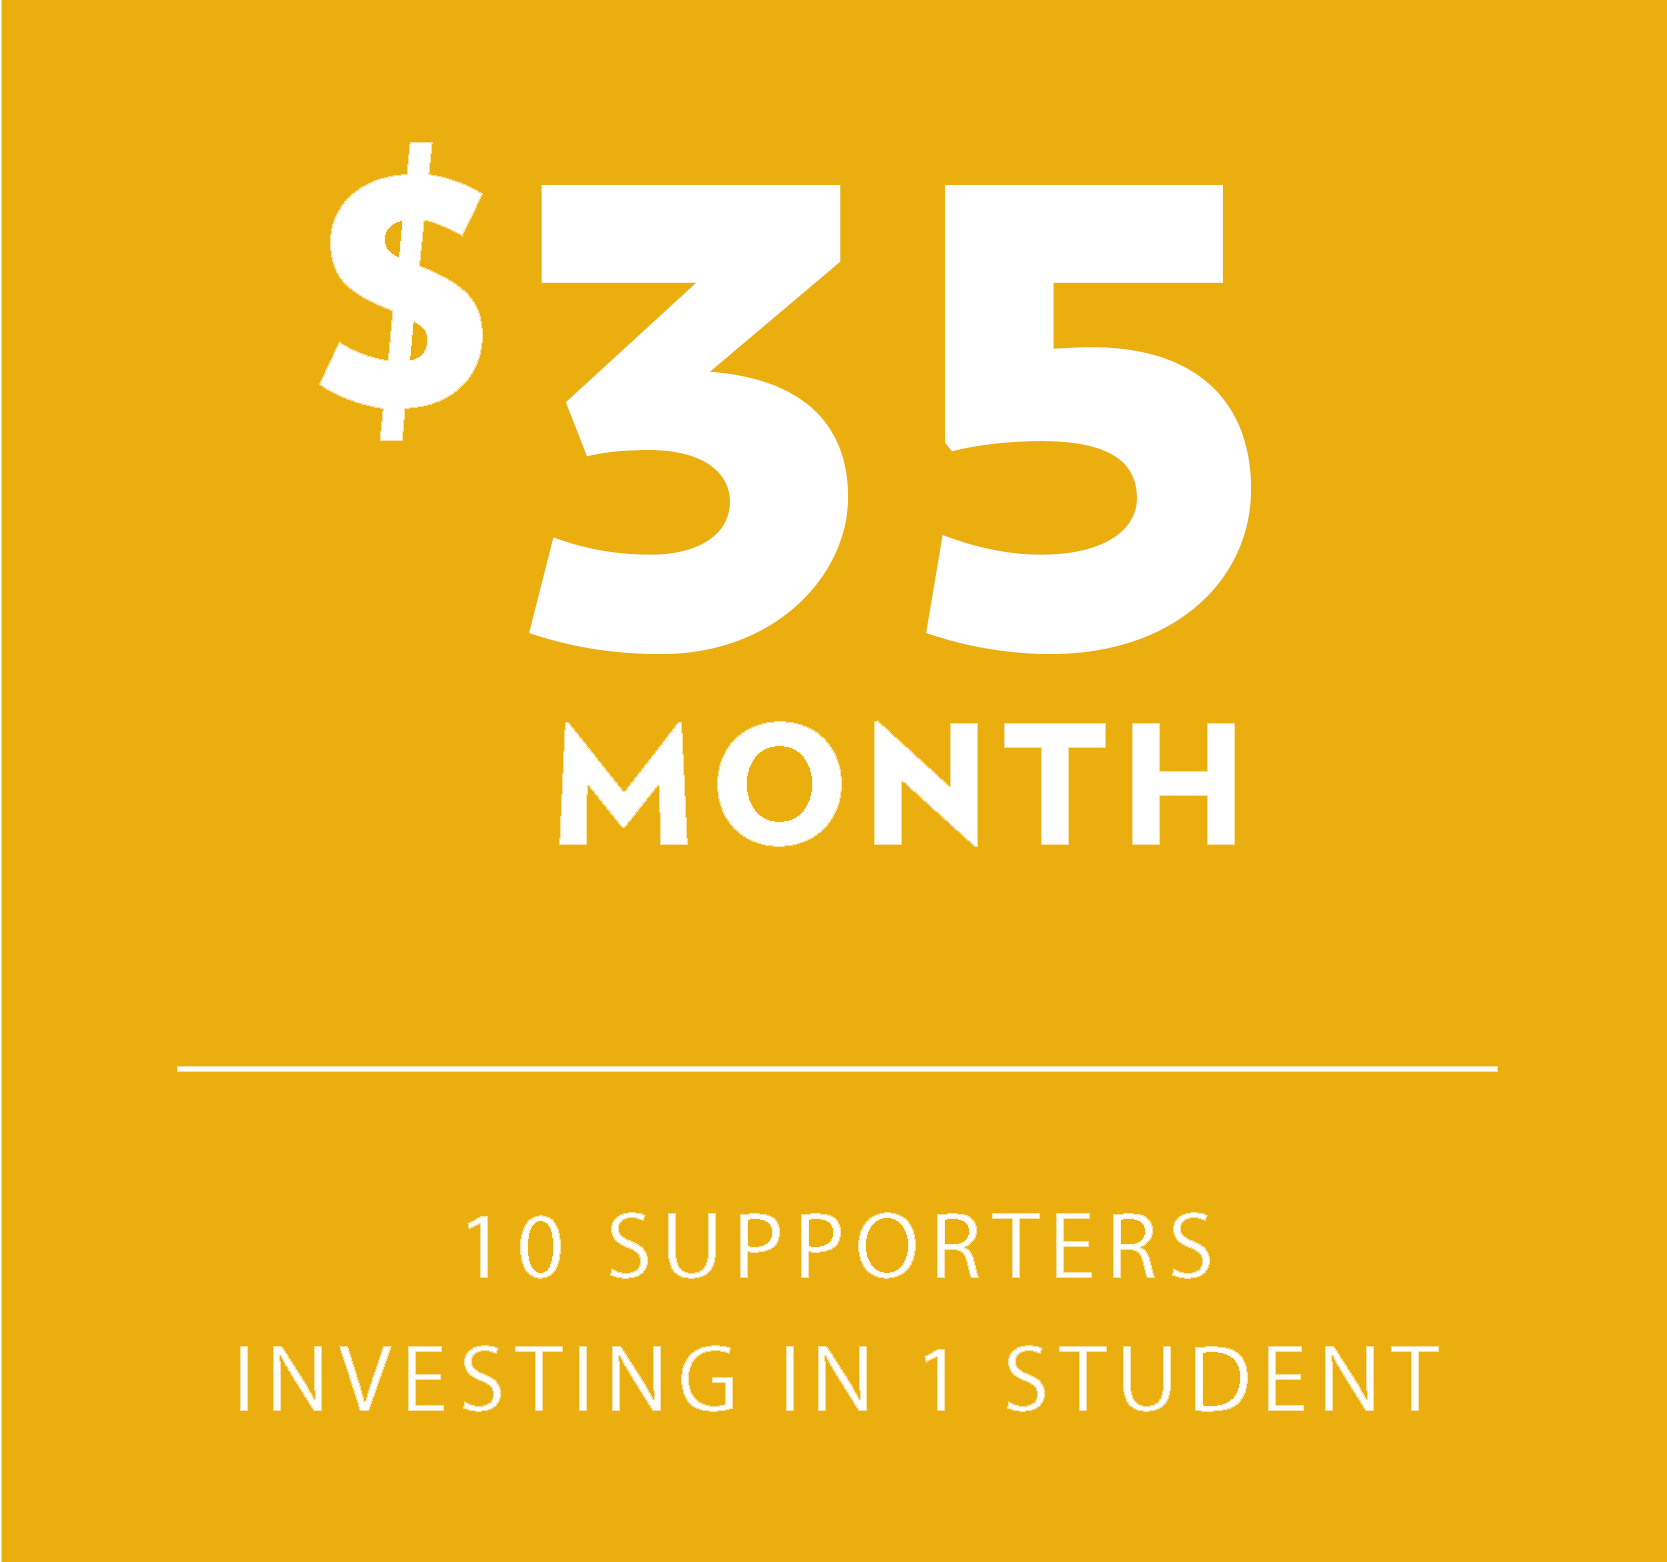 $30 10 givers Investing in 1 student